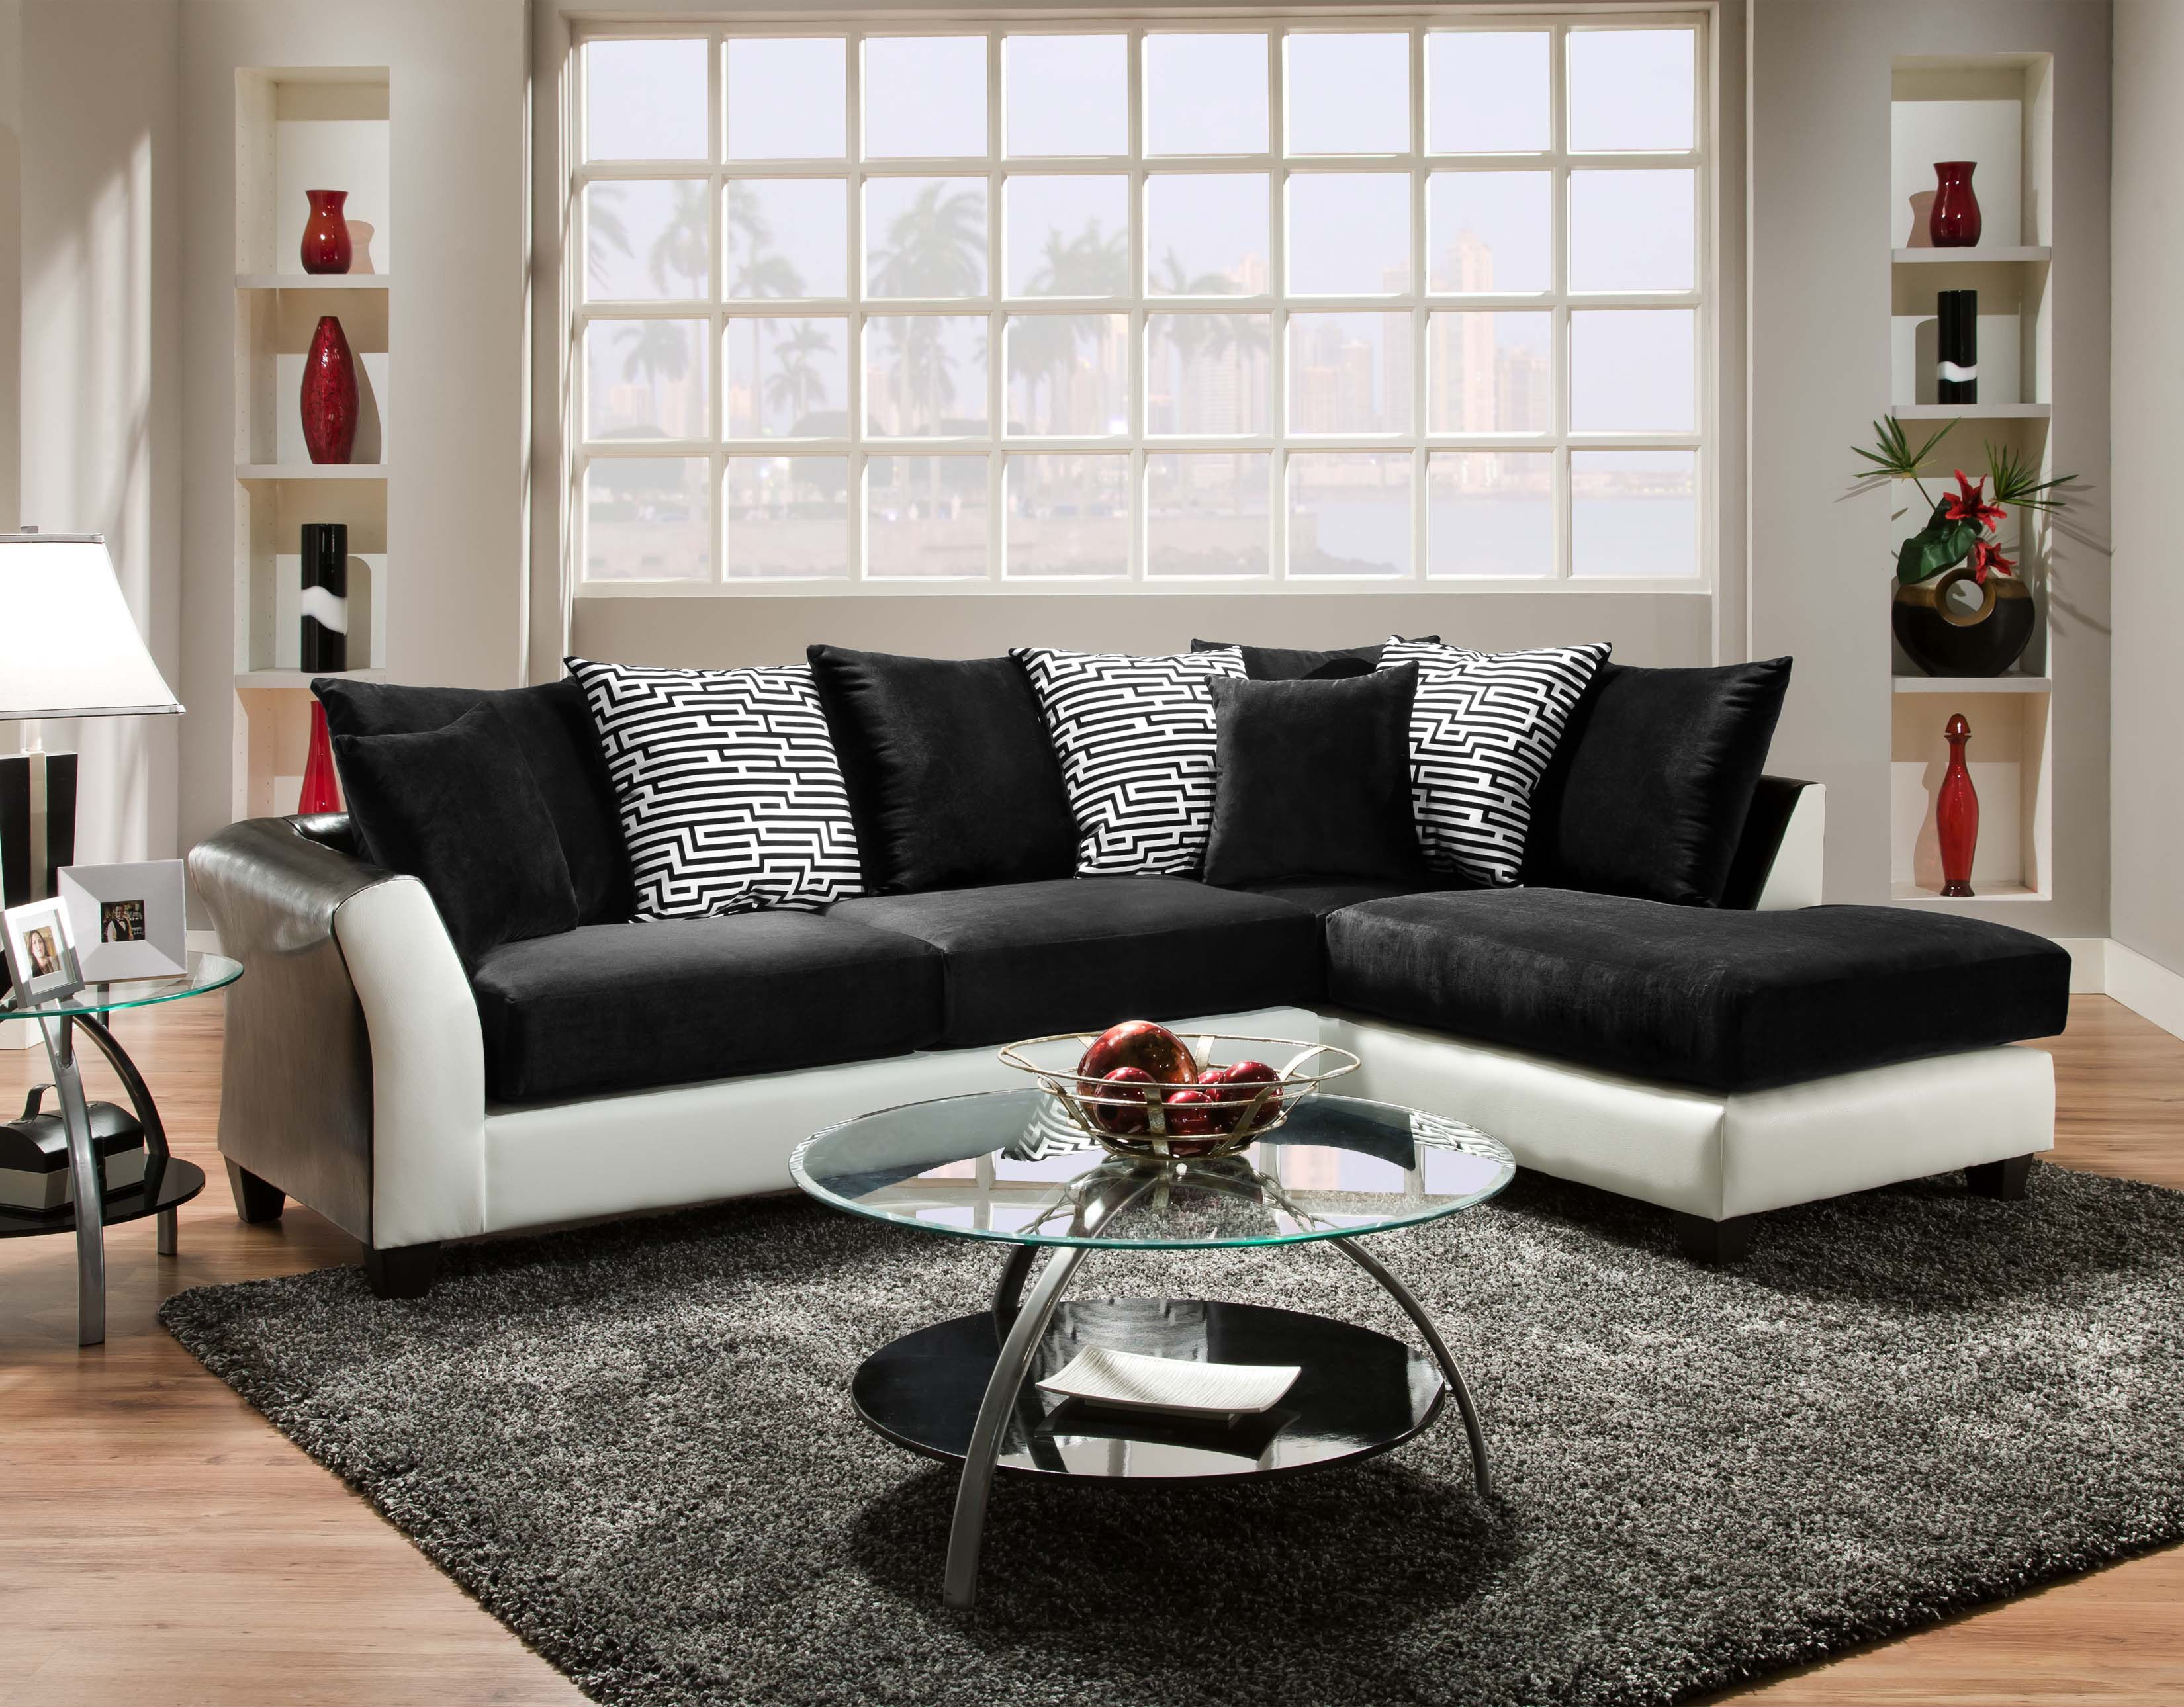 Featured Friday ZigZag Sectional American Freight